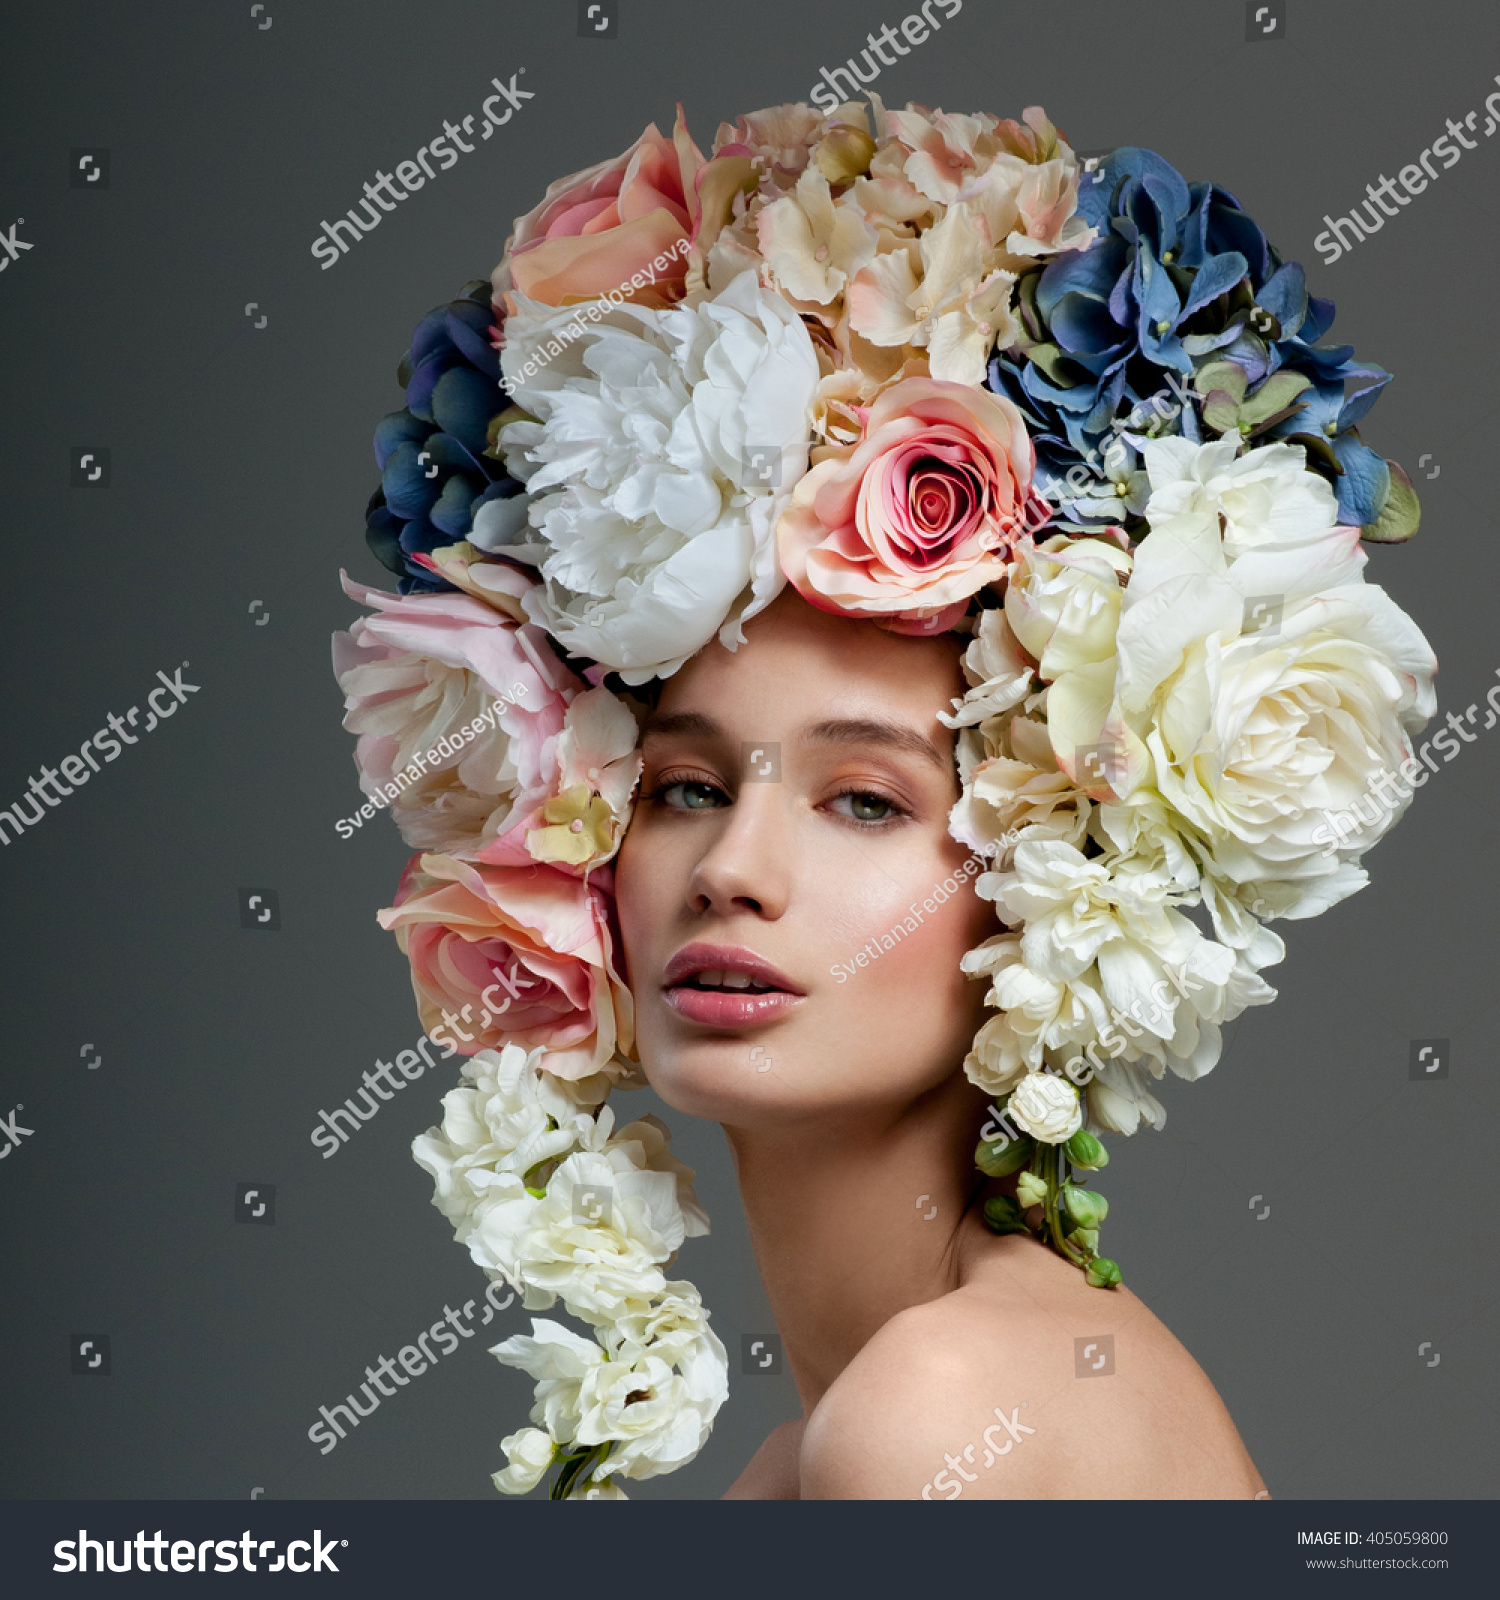 Beautiful woman flowers her hair bouquet stock photo 405059800 beautiful woman with flowers in her hair bouquet of beautiful flowers hairstyle with flowers dhlflorist Gallery